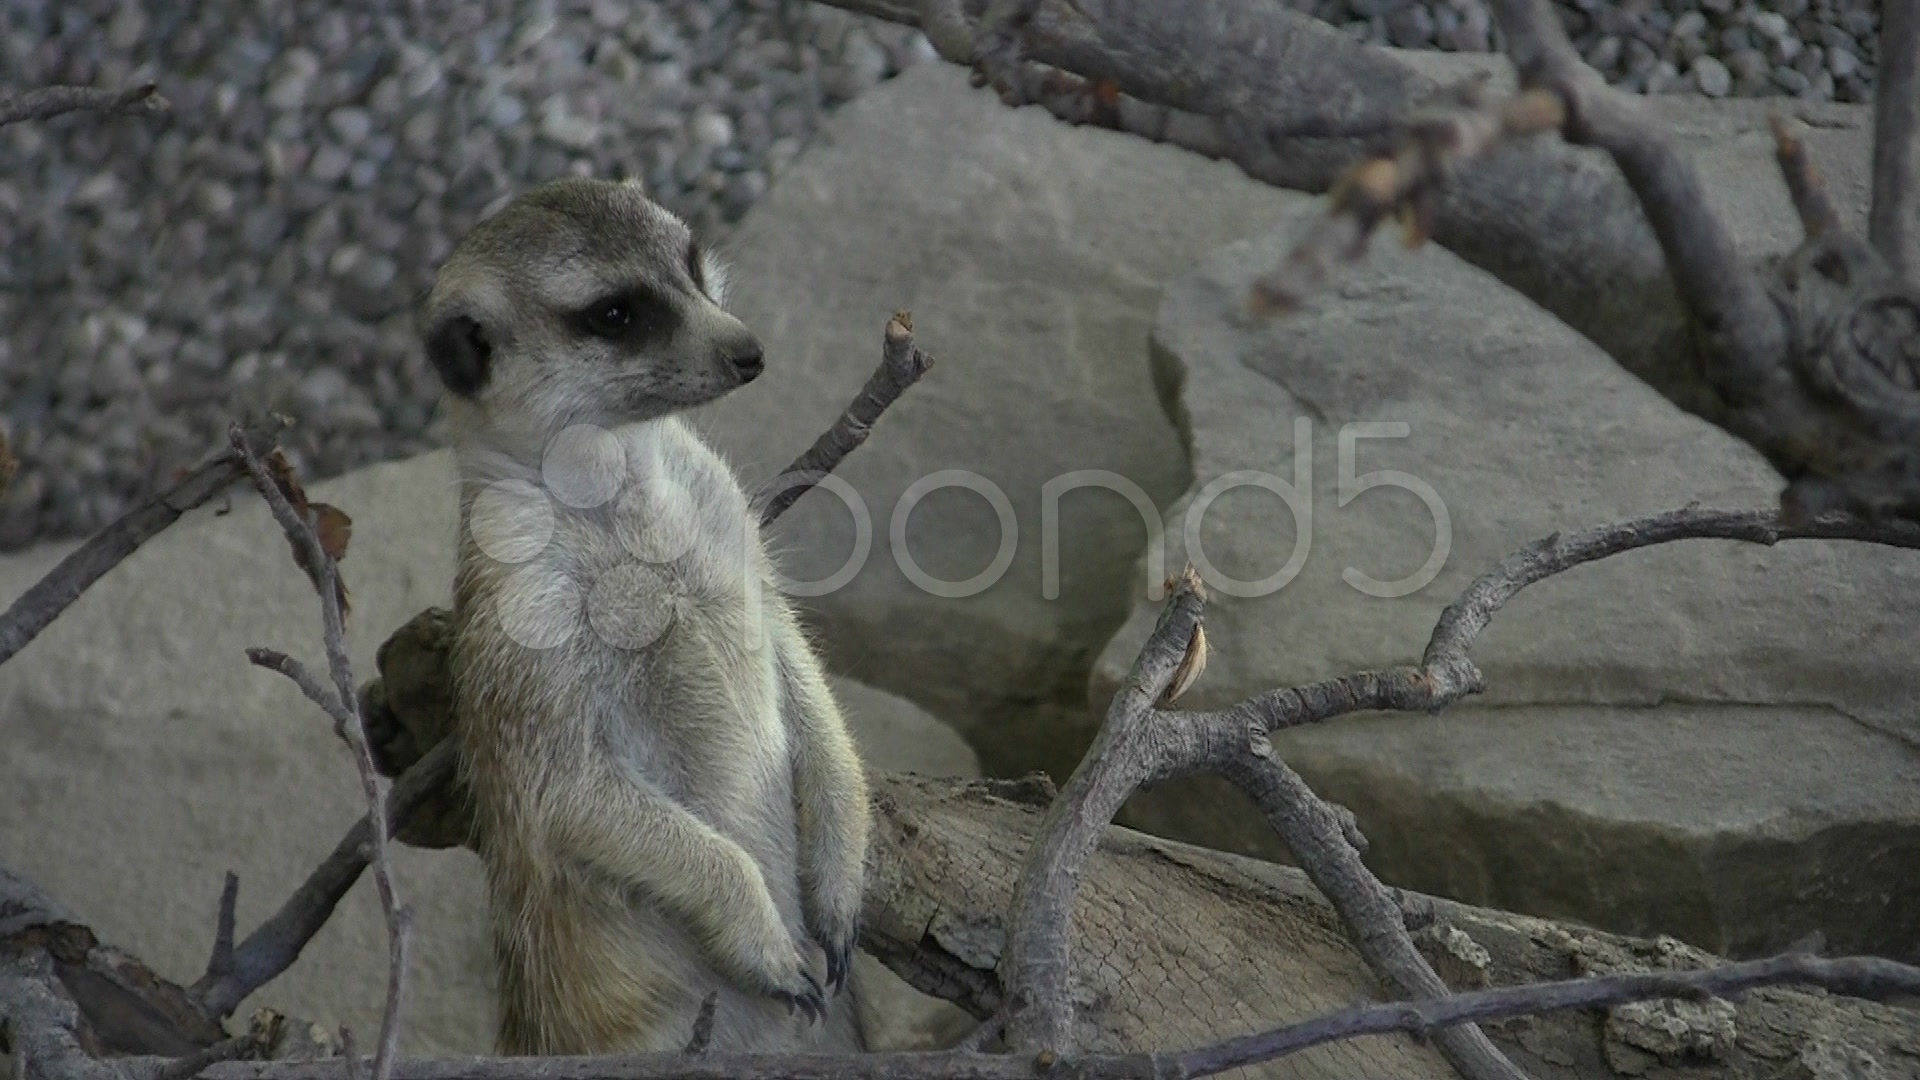 008193368-meerkat-sentry-looking-around